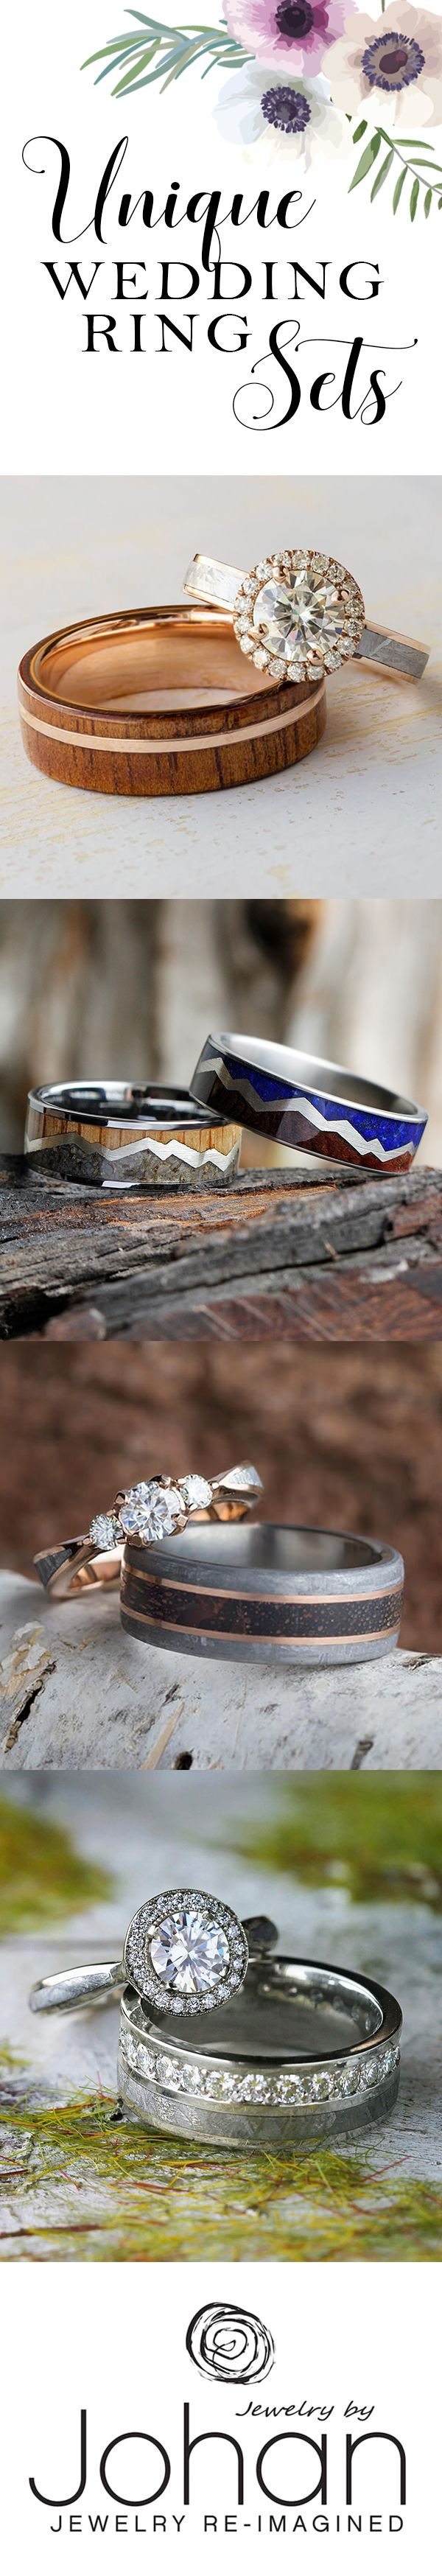 wedding ring pictures fish hook wedding ring 25 Best Ideas about Wedding Ring Pictures on Pinterest Wedding ring photography Ring pictures and Wedding pictures